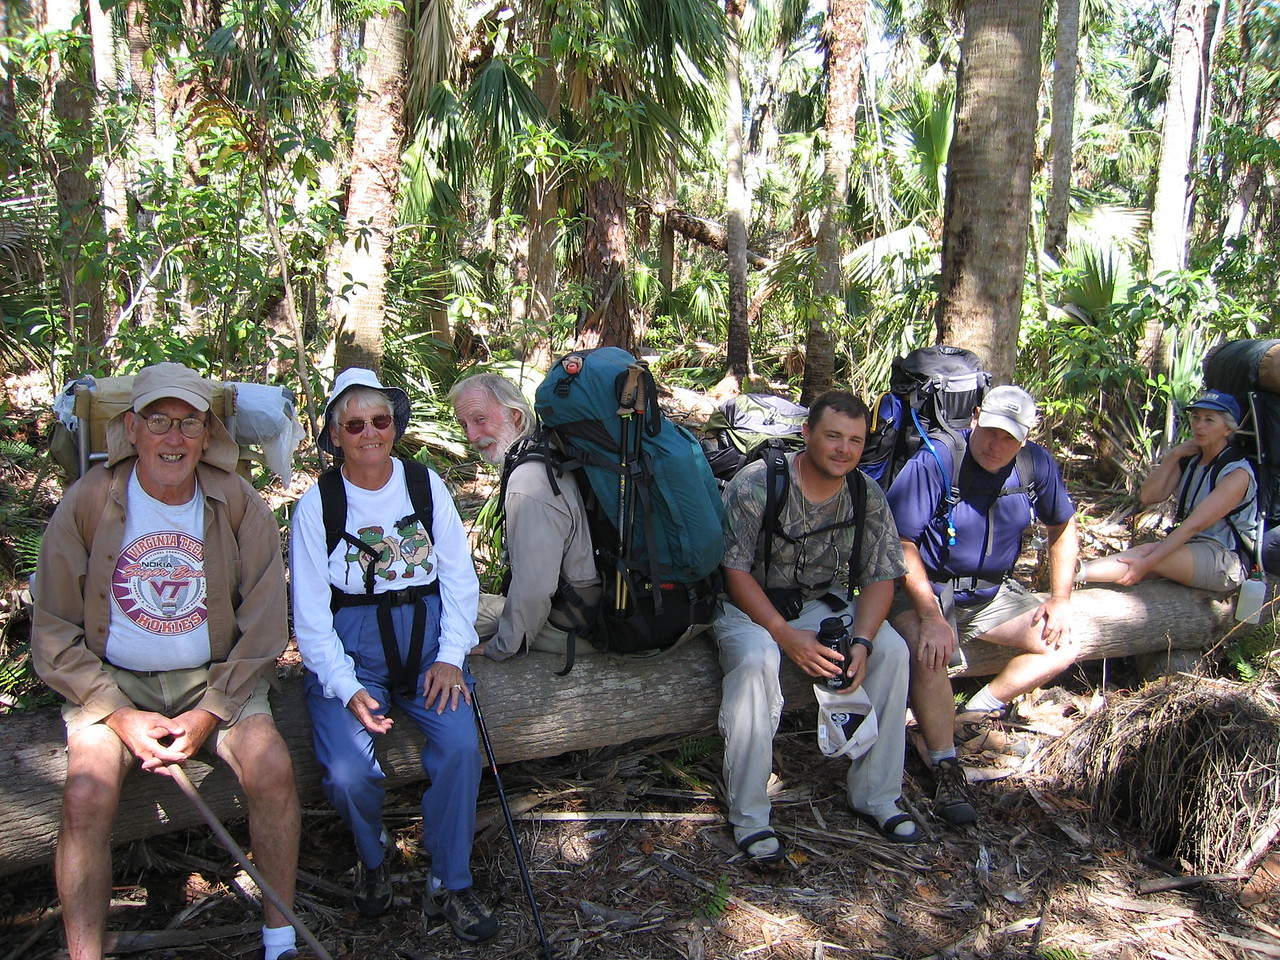 Bea and her chicks<br /> photo credit: Raphael Clemente / Florida Trail Association